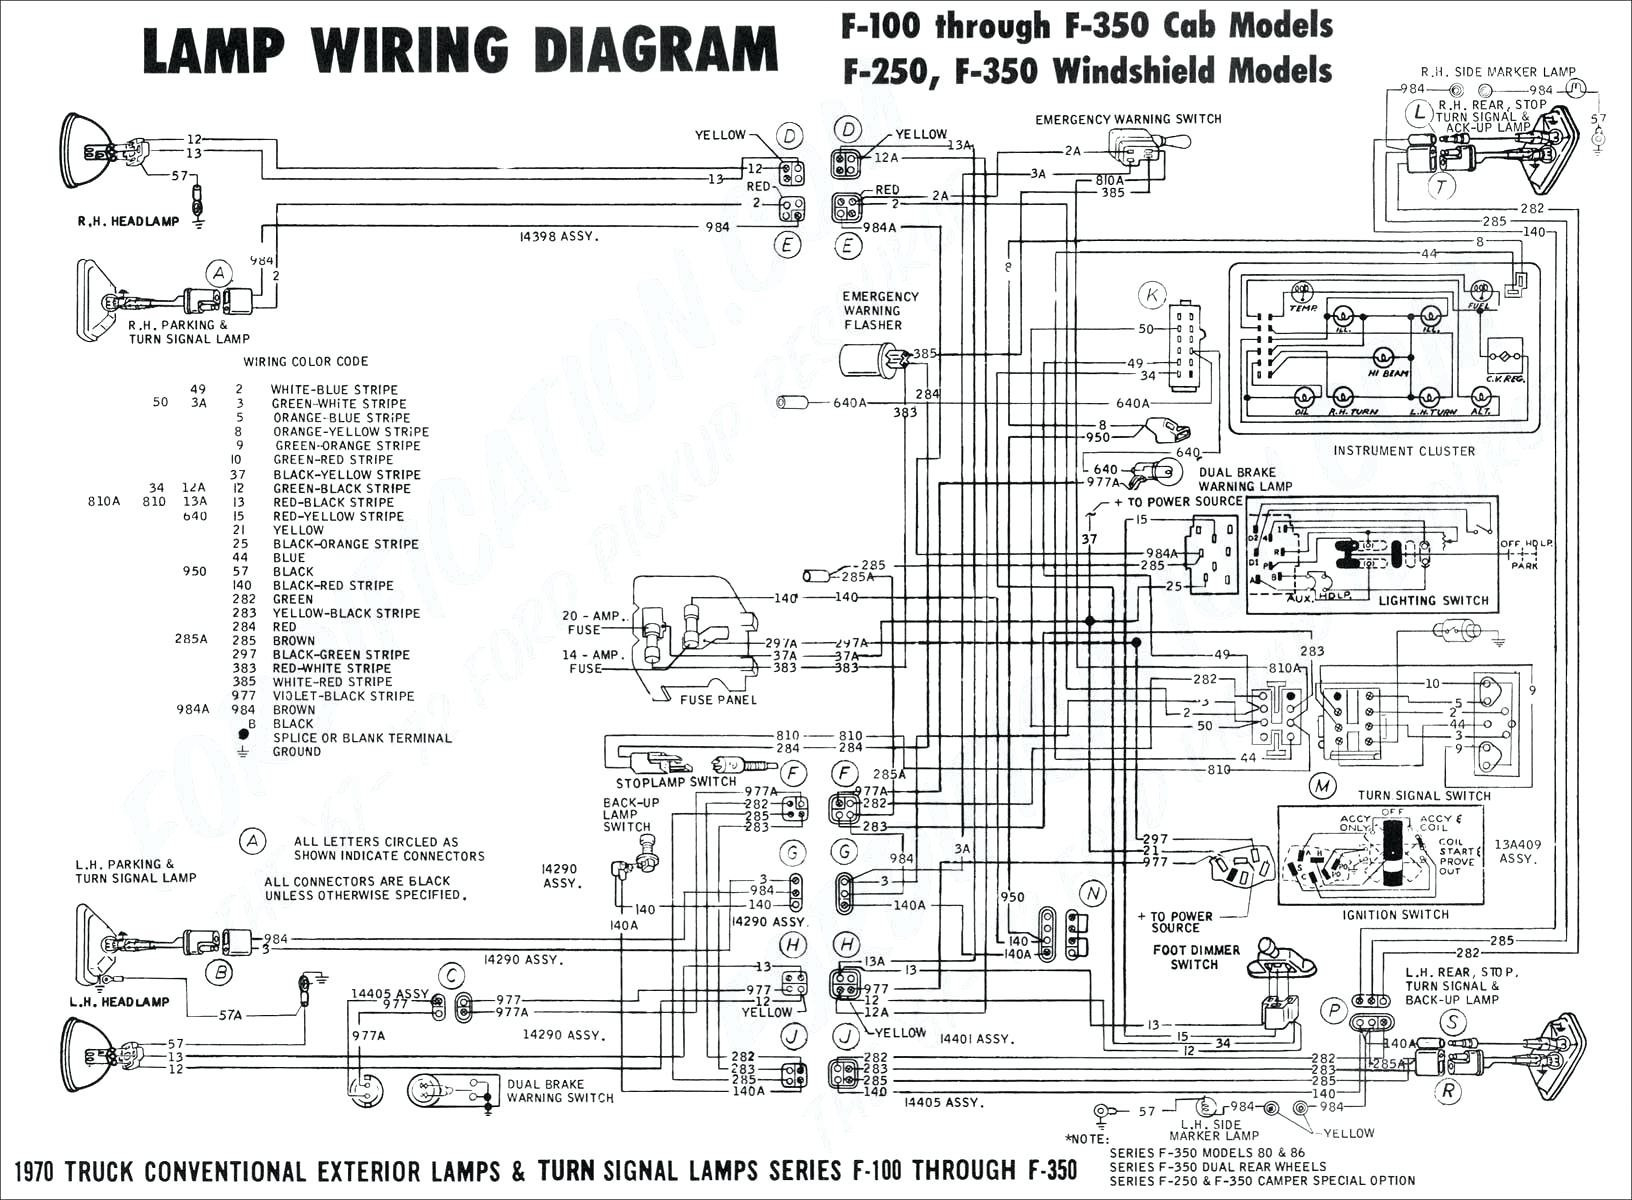 vehicle wiring diagram program repair manual  automotive hazard switch wiring diagram free download #2